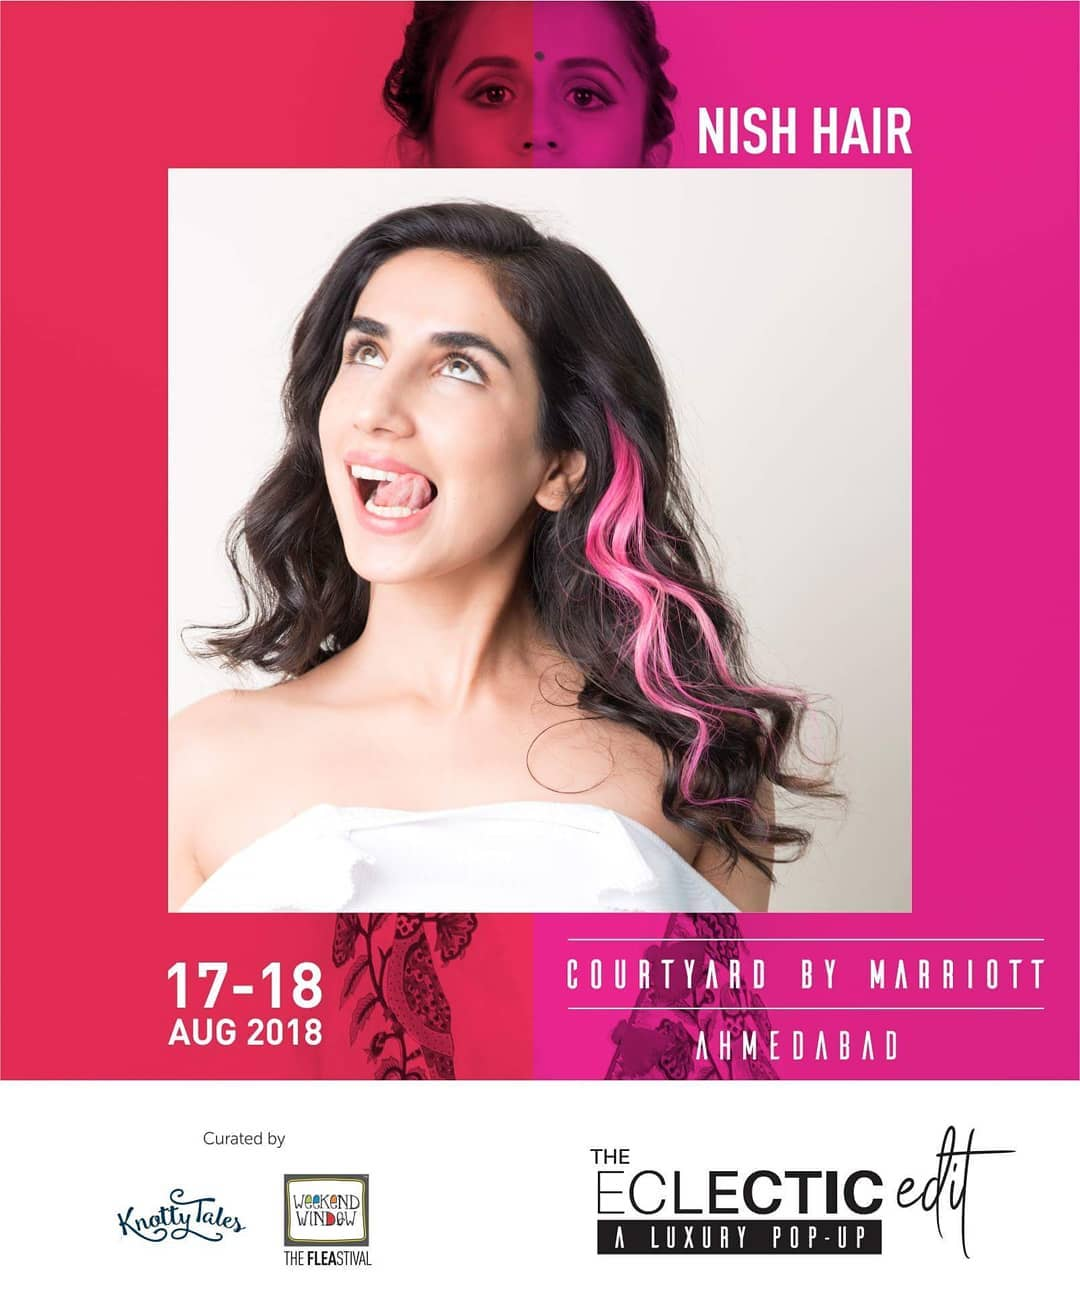 Super comfy, real hair, clip on hair extensions from @nishhair gives your hair length, volume, color and so much more of confidence, positivisty and empowerment! They are just as excited as we are to be in Ahmedabad at The Eclectic Edit - season 3!  17th-18th August, 2018 at Courtyard by Marriott. 65+ designers showcasing for all your festive collection needs.  #theeclecticedit #knottytales #weekendwindow #luxuryshopping #popup #festive #shoptillyoudrop #designers #hairextensions #hairvolume #haircolor #clipons #beauty #fancy